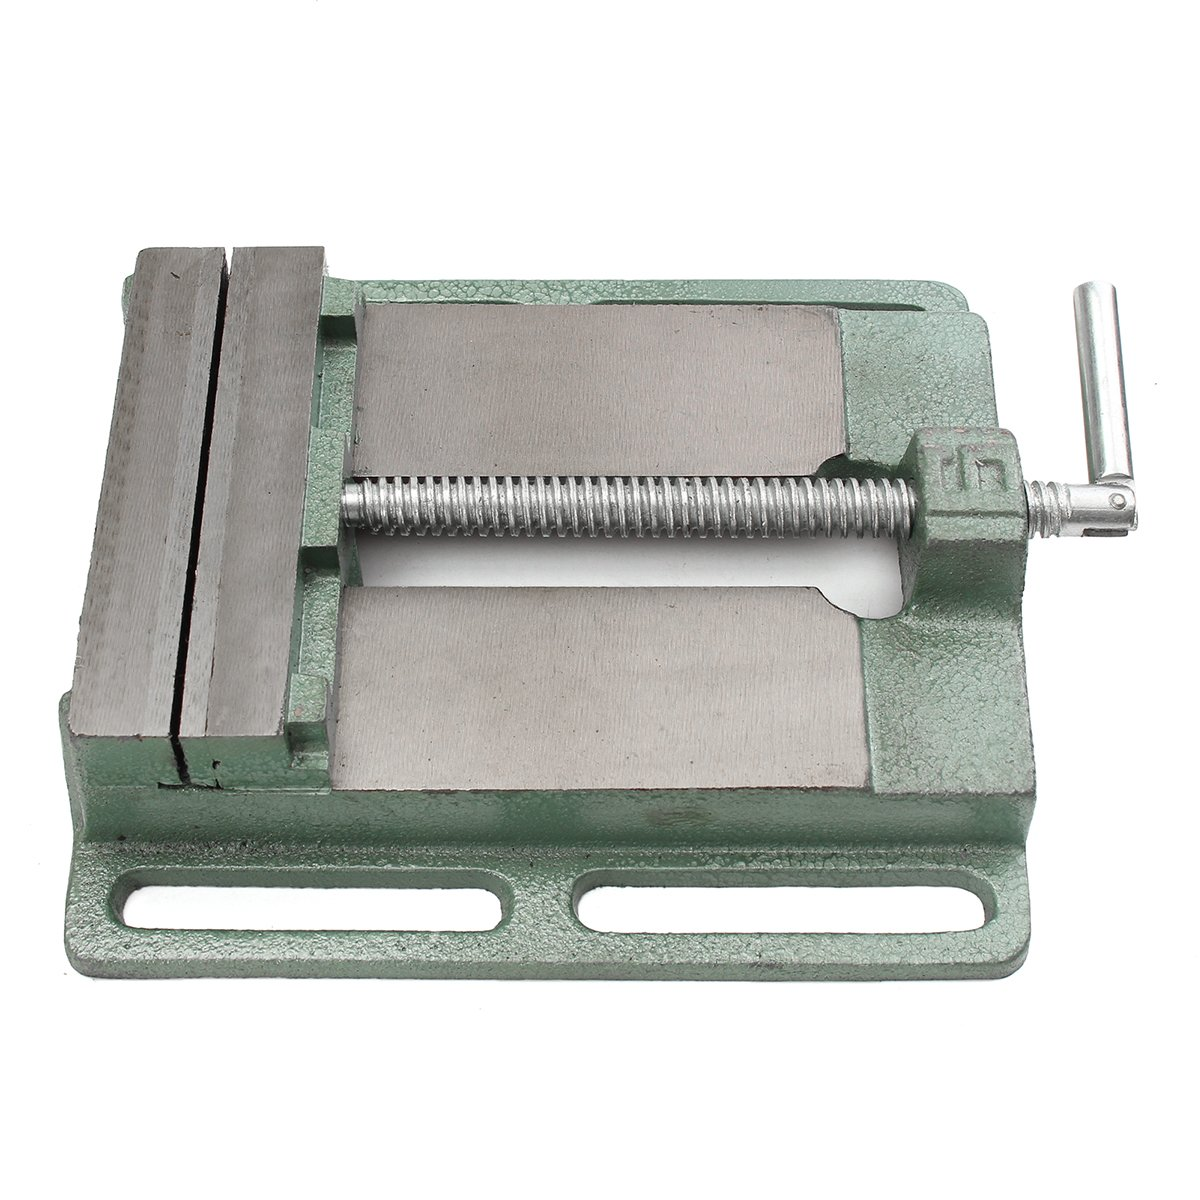 OlogyMart 5Inch Heavy Duty Drill Press Vice Bench Clamp WoodWorking Drilling Machine